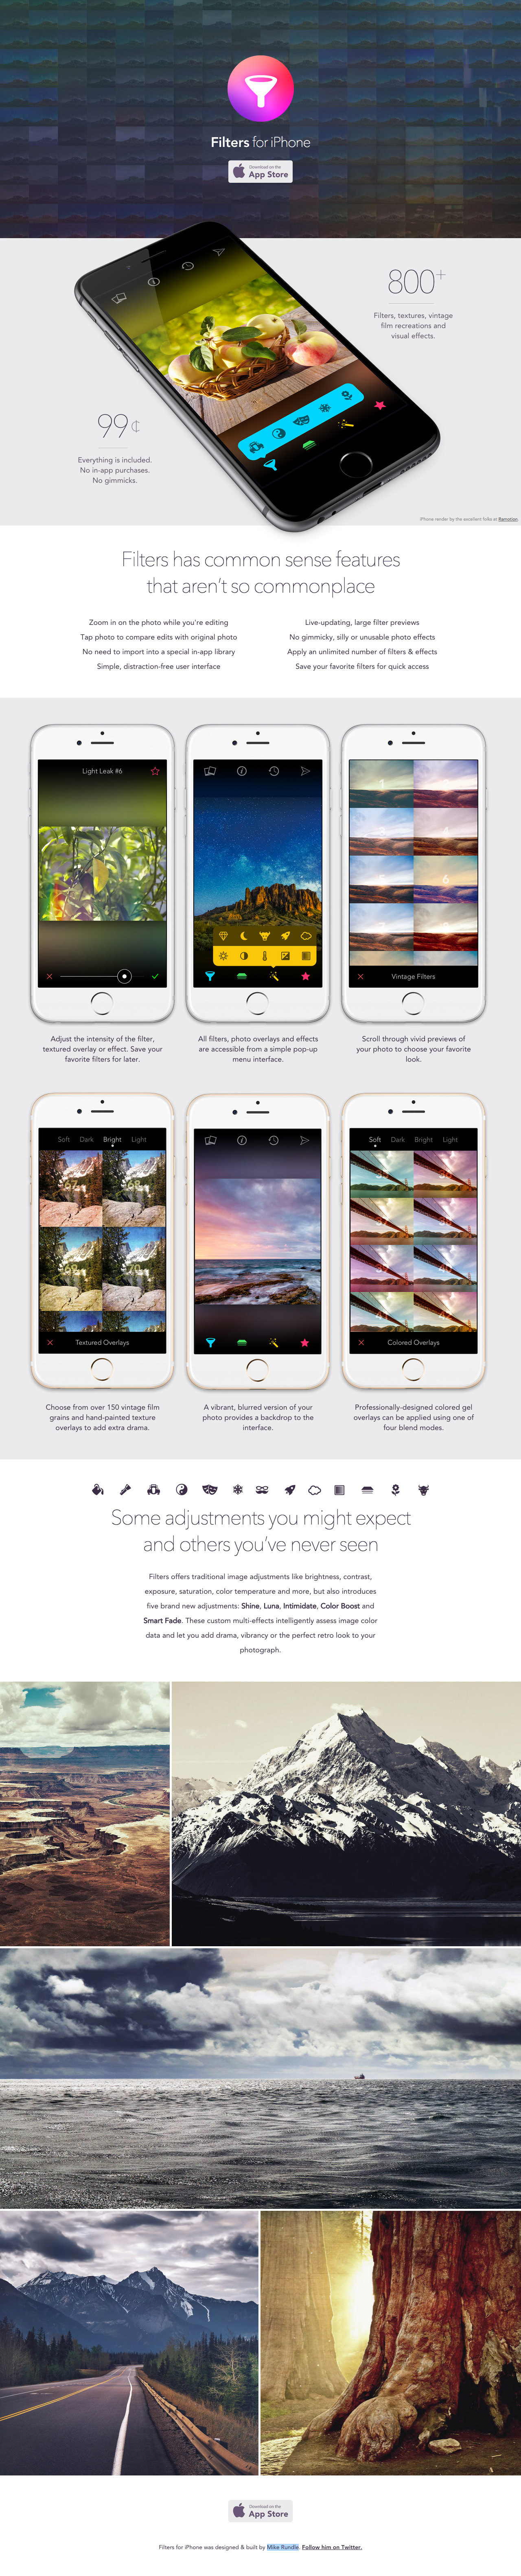 Filters for iPhone Website Screenshot